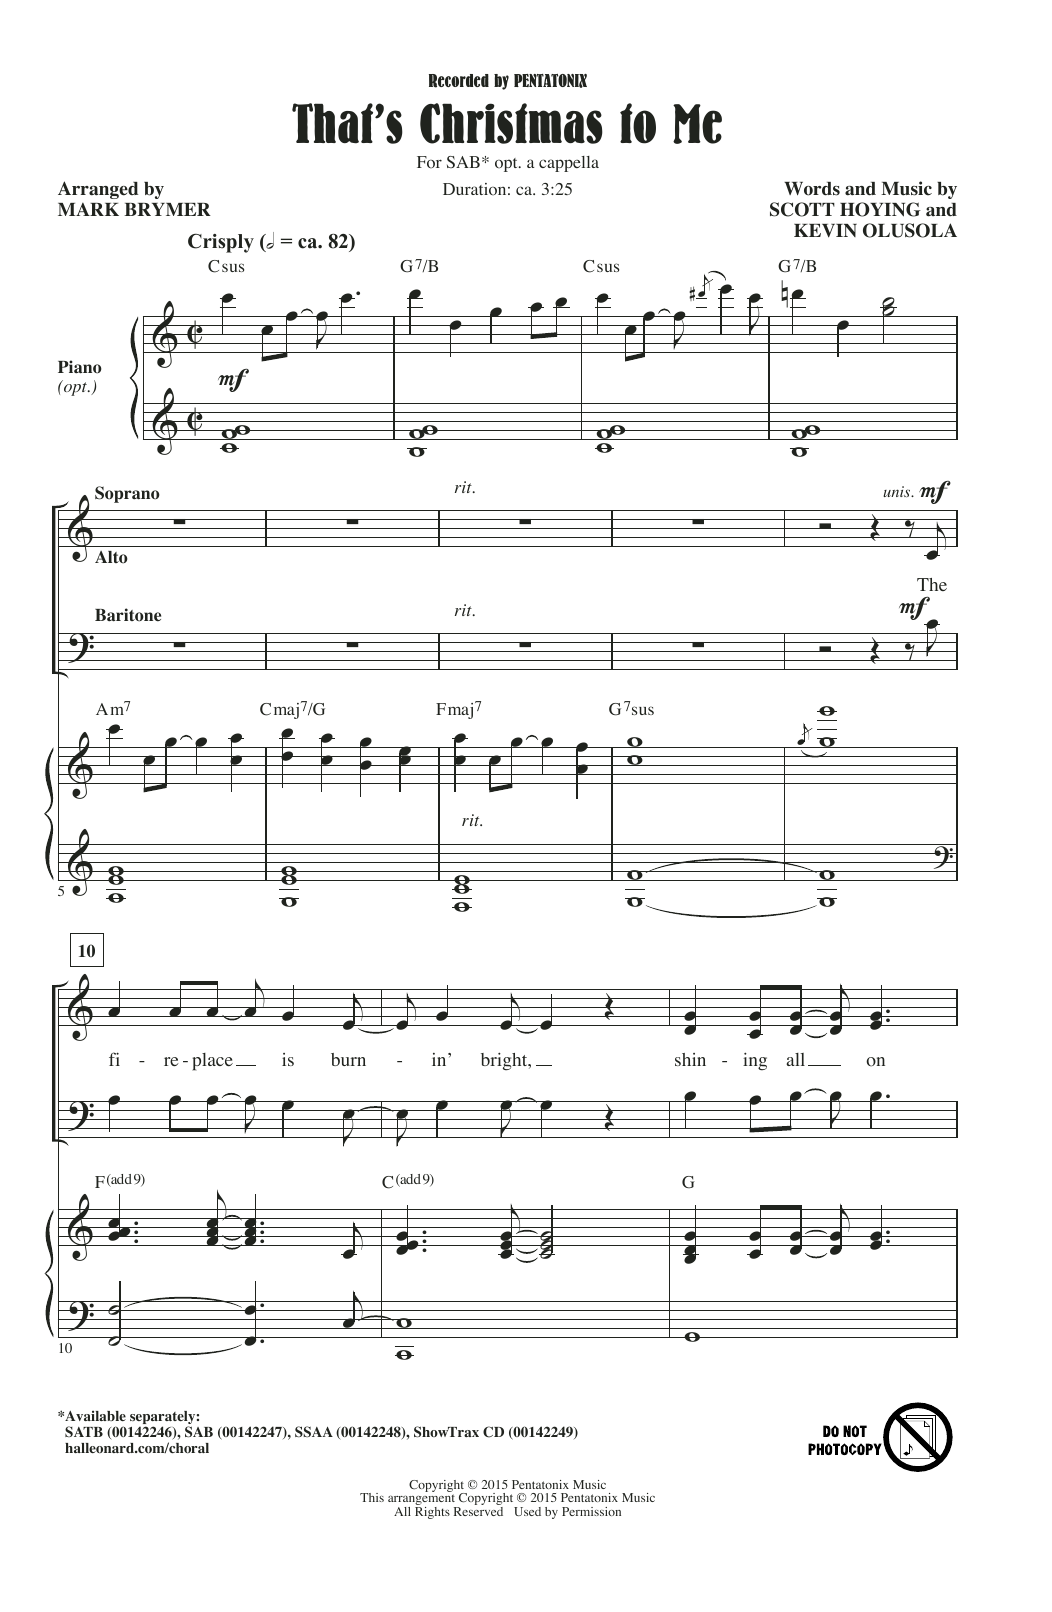 Pentatonix That's Christmas To Me (arr. Mark Brymer) sheet music notes and chords. Download Printable PDF.